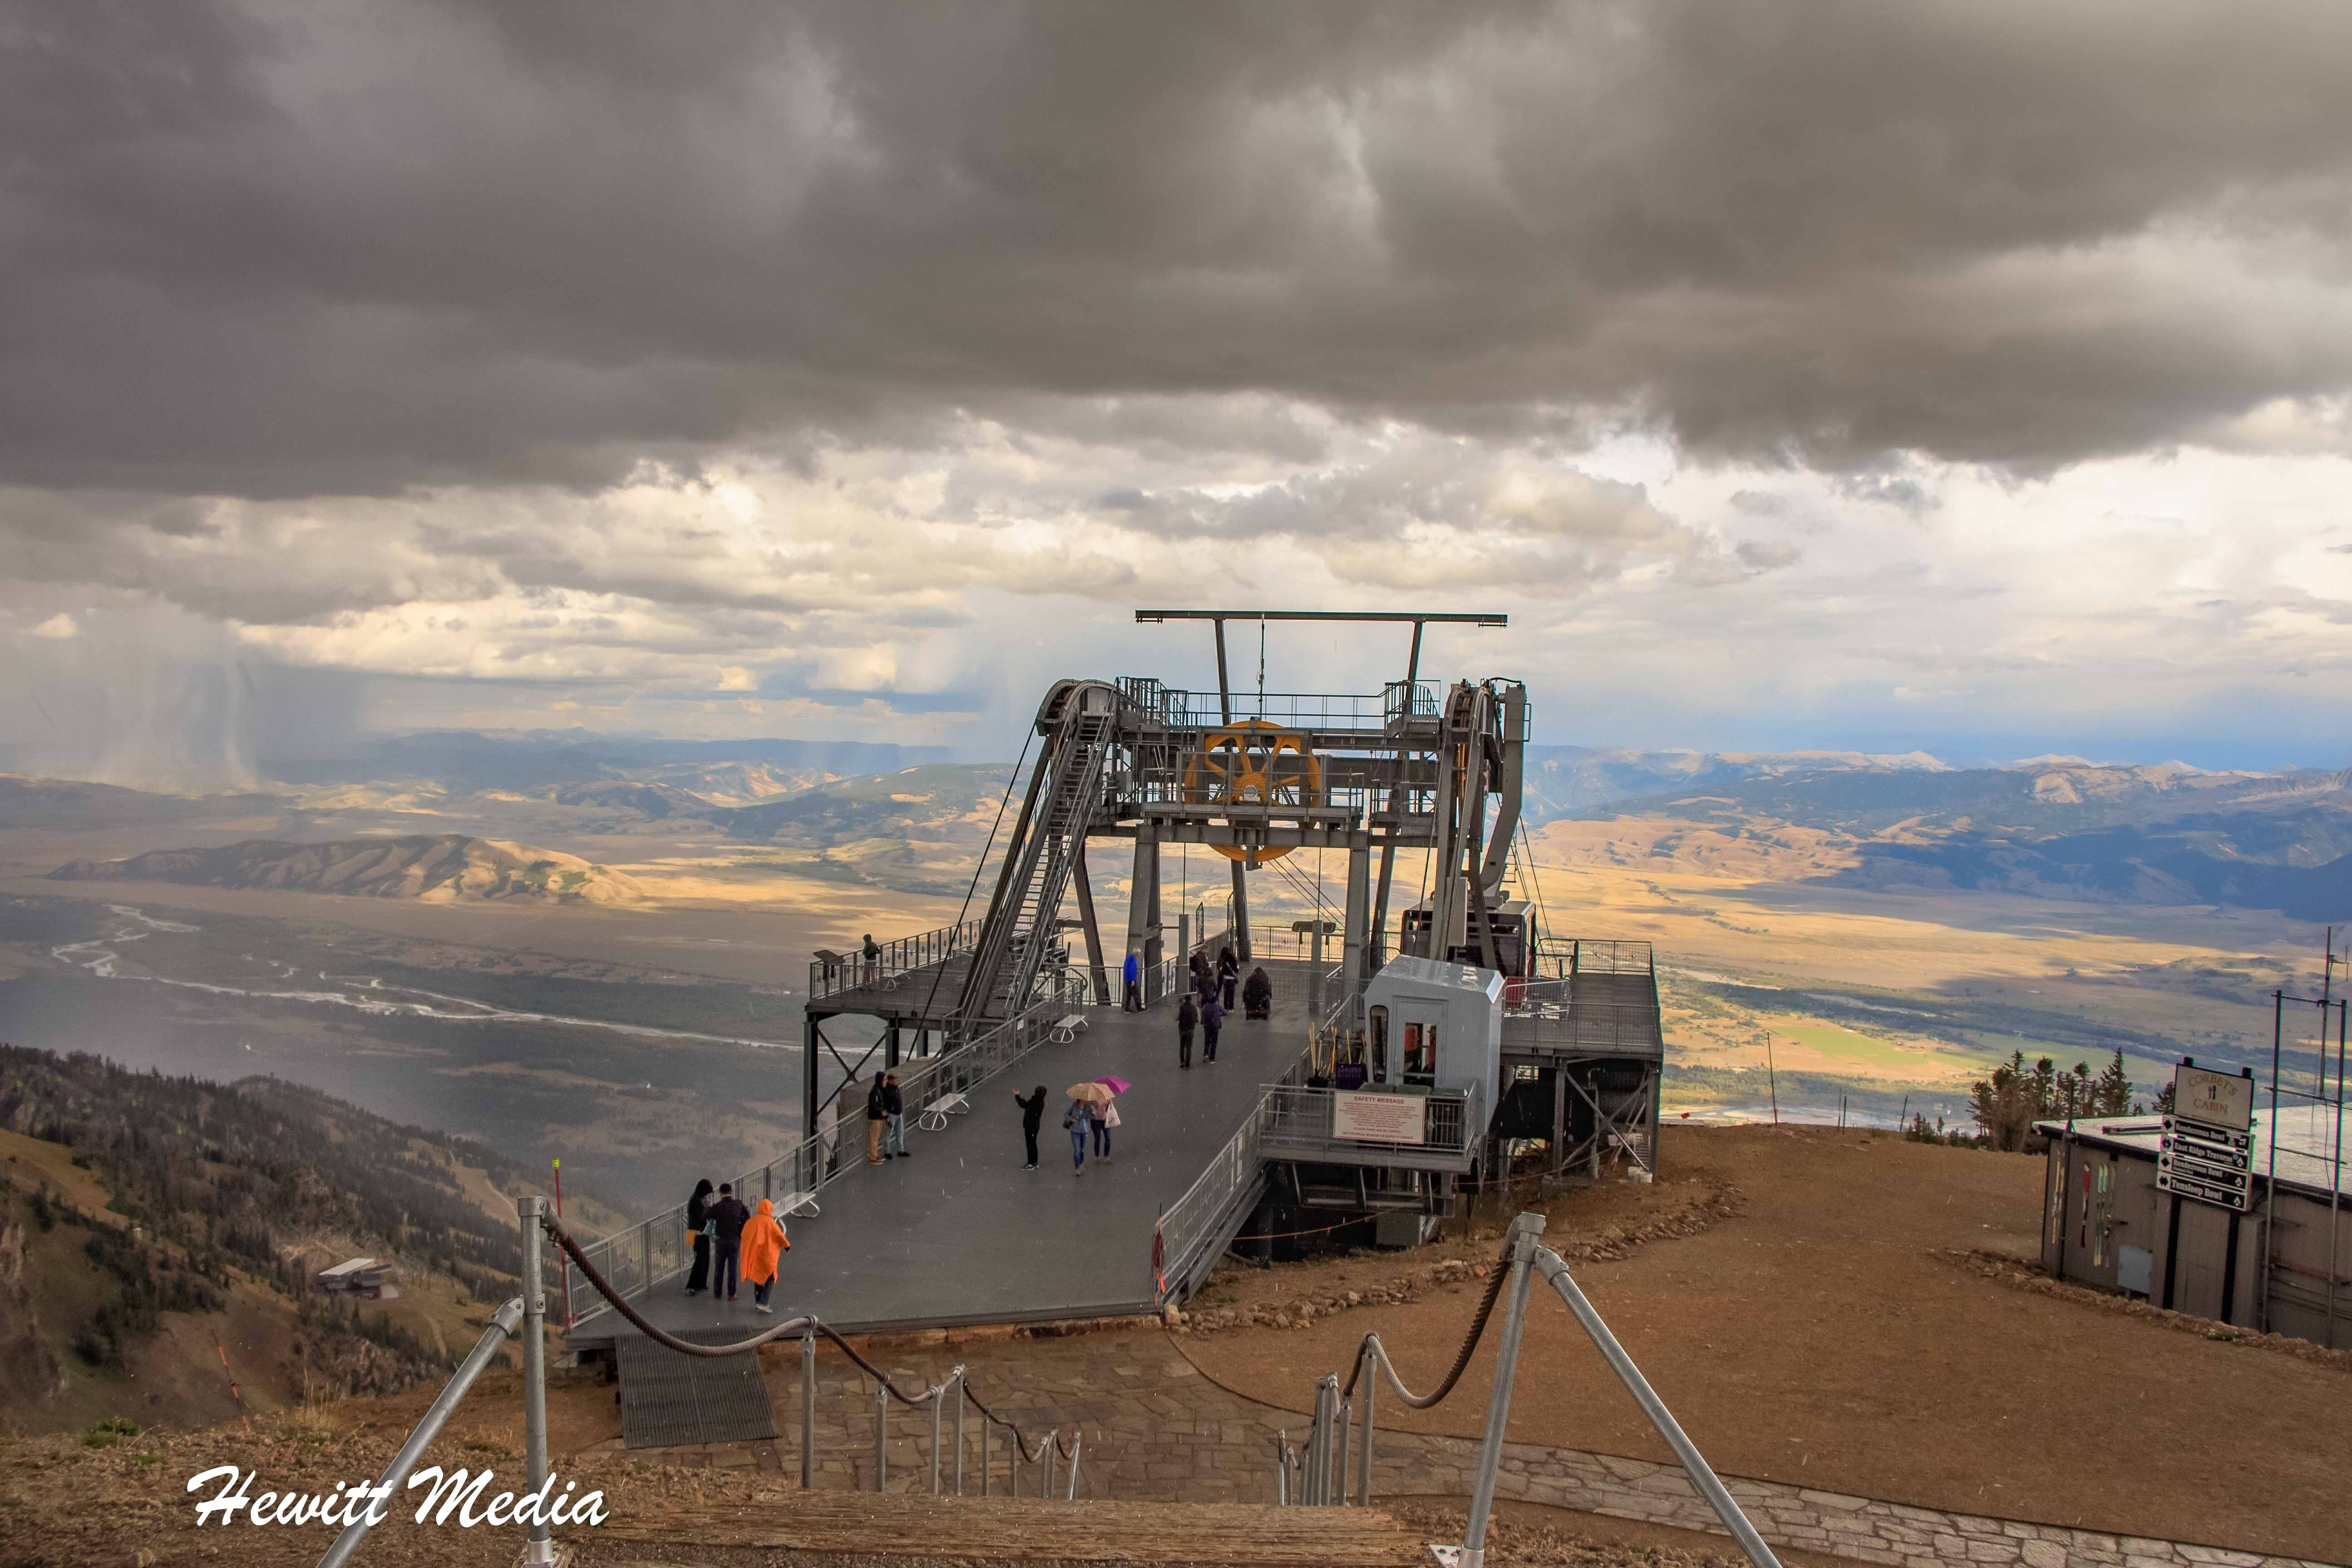 The Jackson Hole Gondola